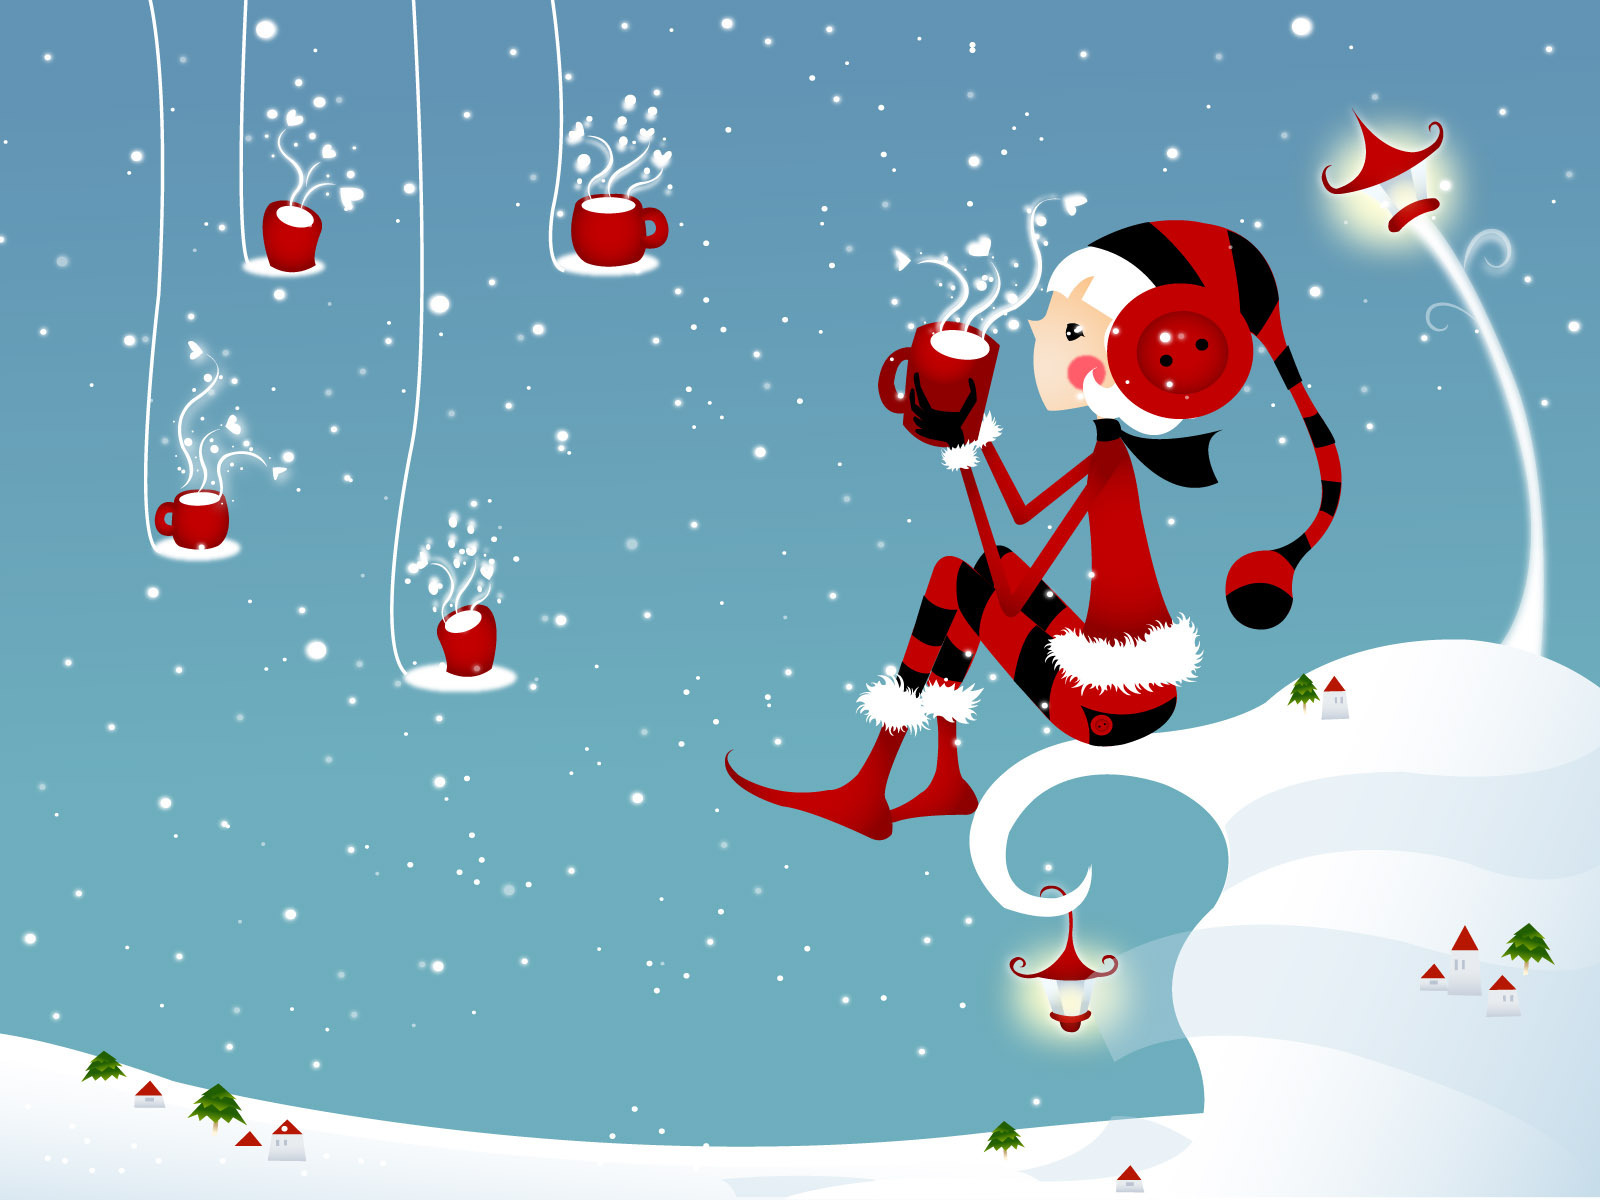 http://images2.fanpop.com/image/photos/9300000/Christmas-wallpaper-christmas-9330975-1600-1200.jpg